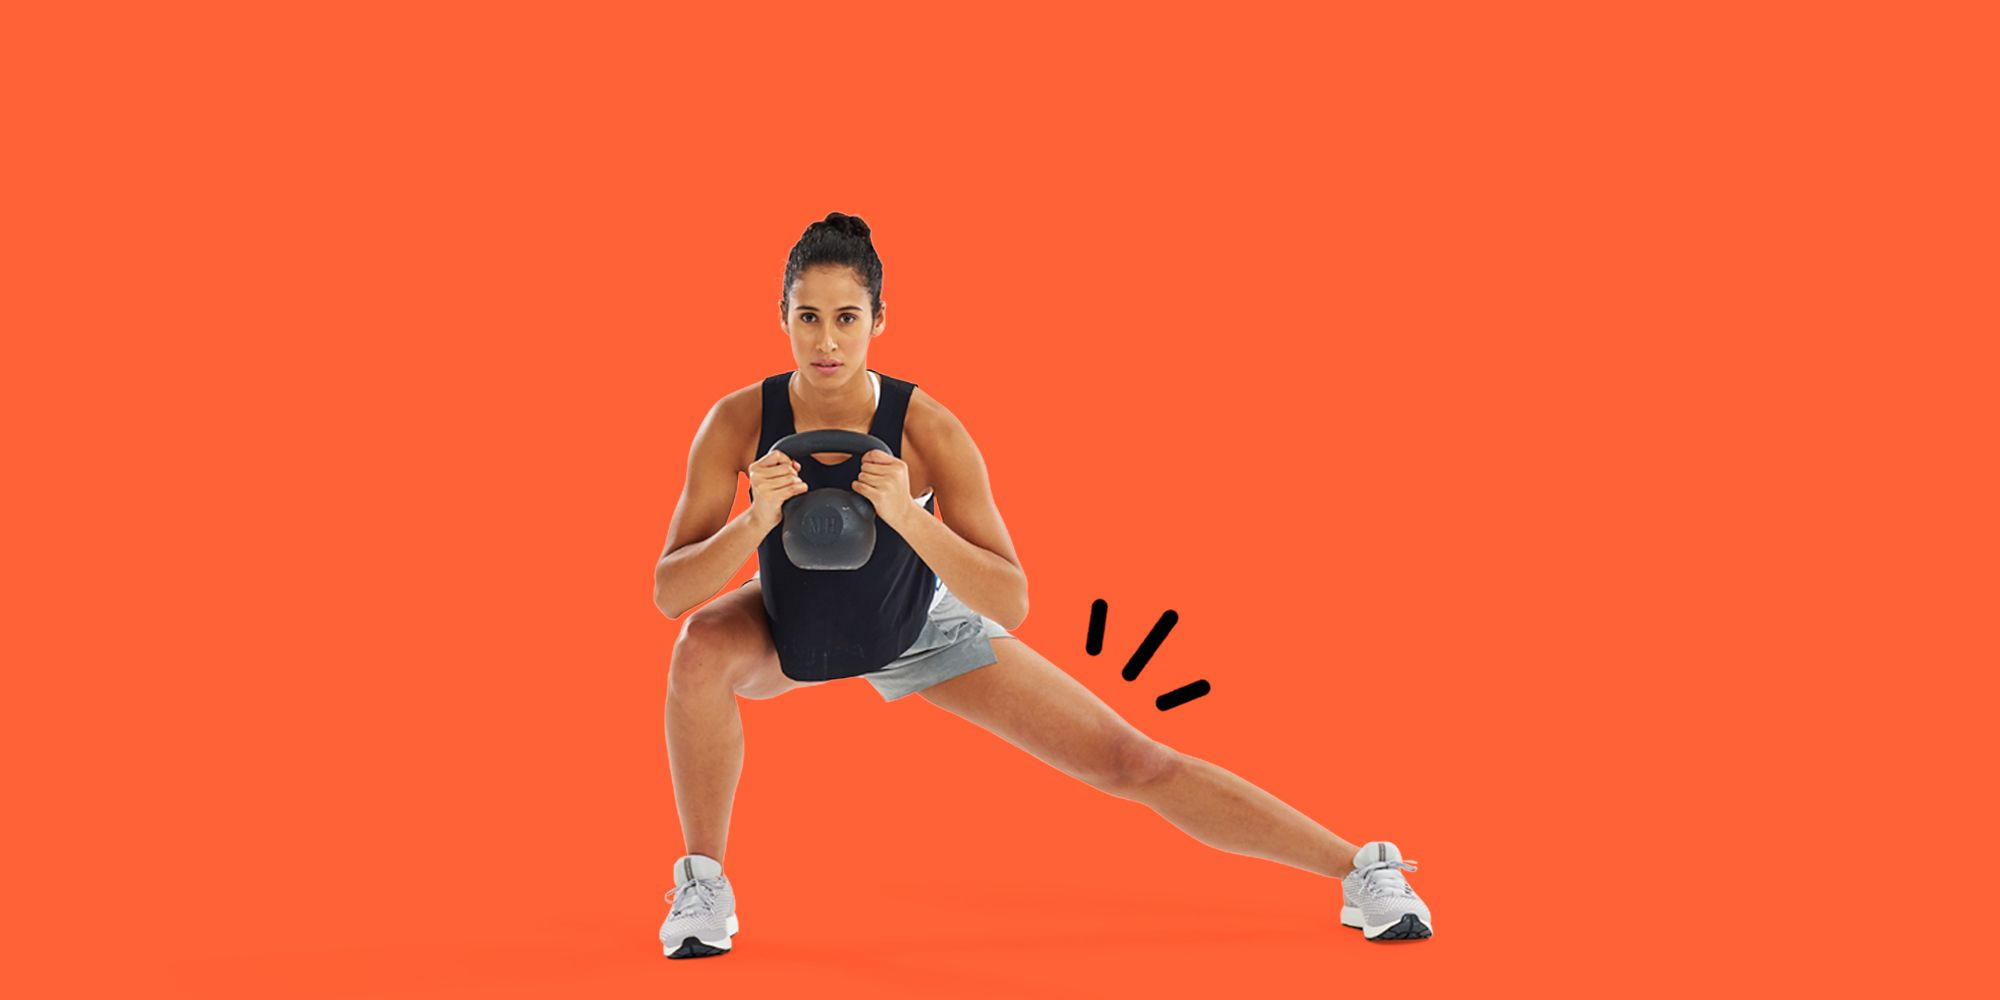 Cossack squat: sculpt glutes and thighs with this one powerful move